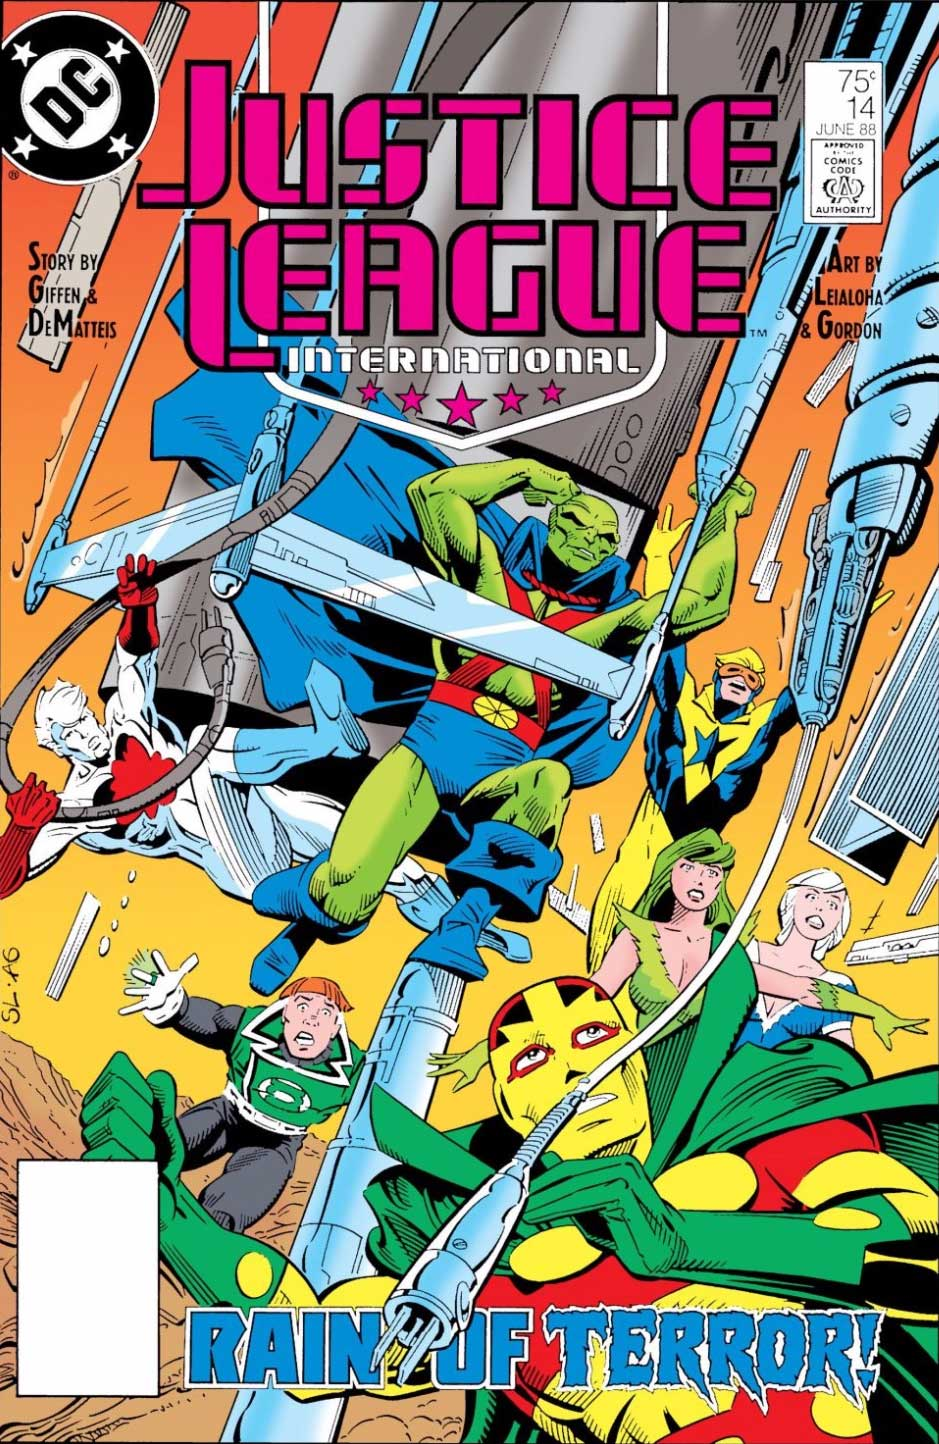 Justice League International #14 cover by Steve Leialoha and Al Gordon